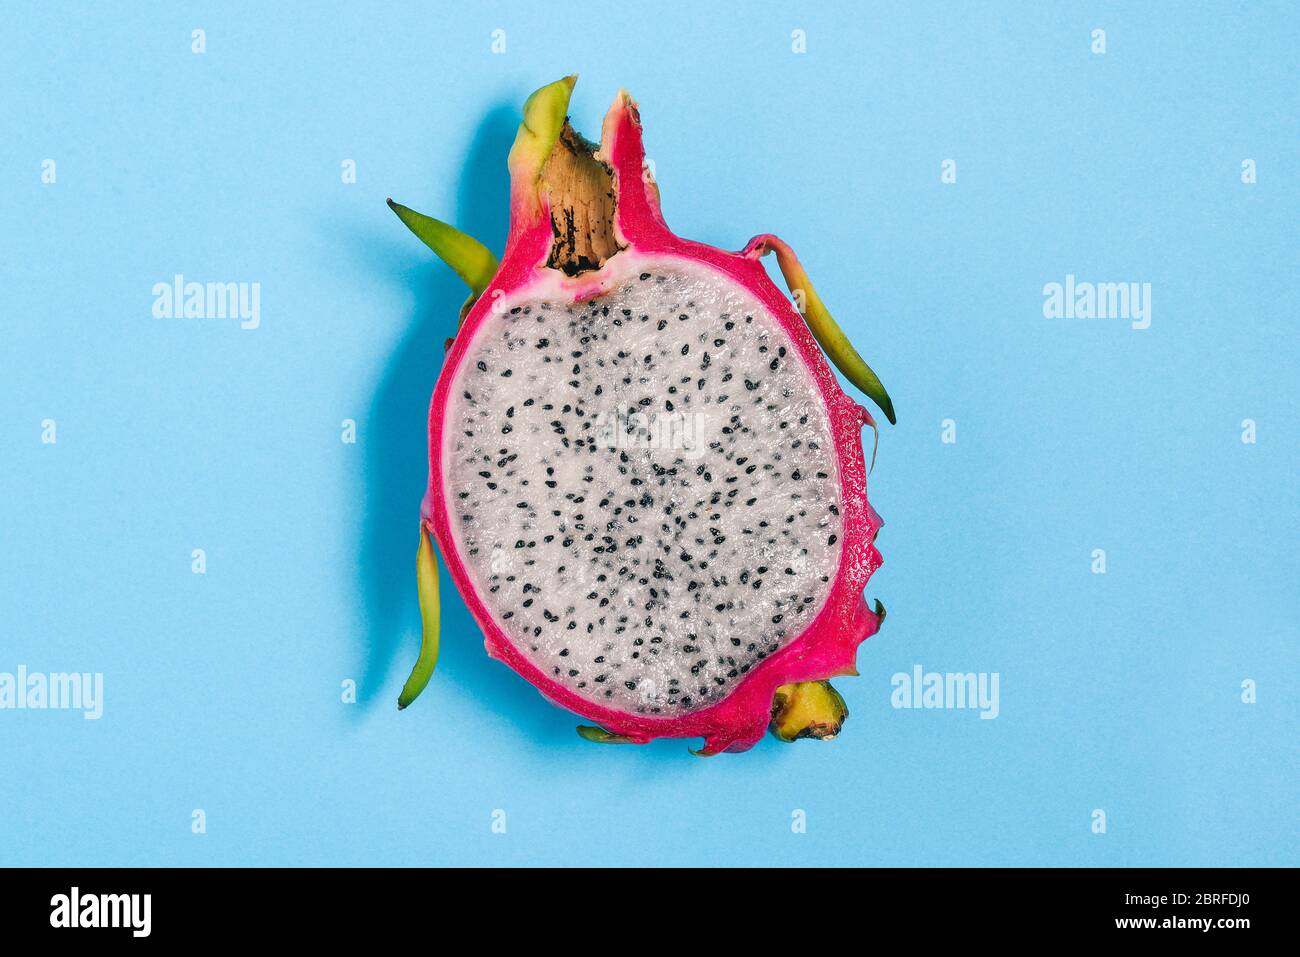 dragon fruit during candida free diet